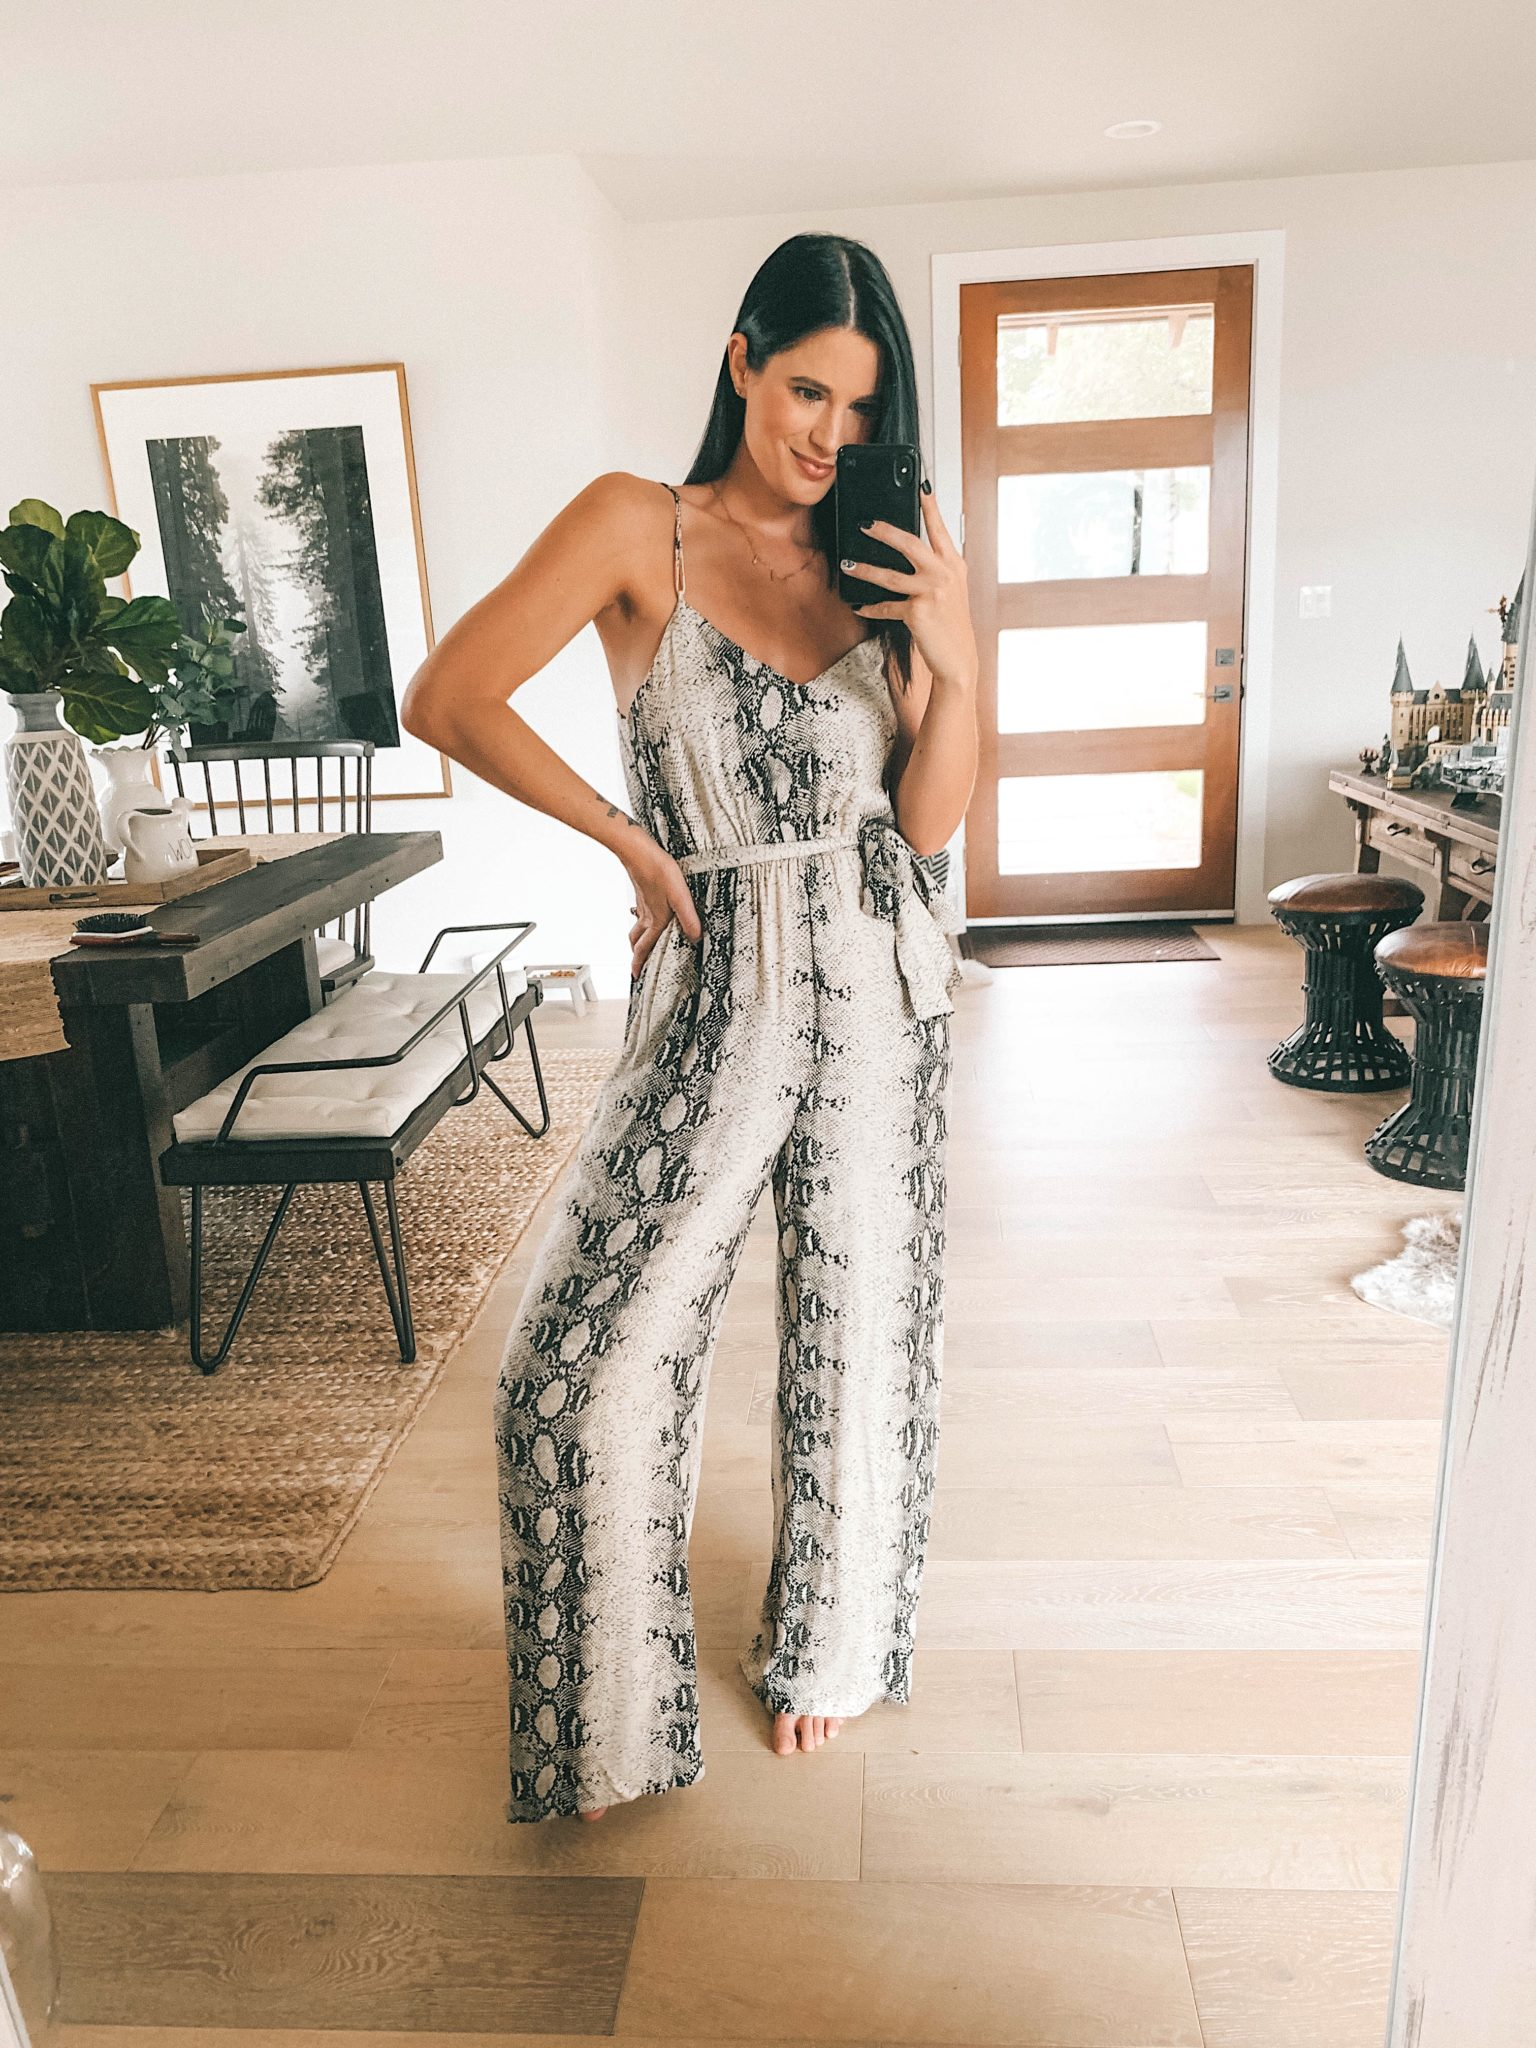 Lovestitch Fall Outfit Try-On Session by popular Austin fashion blog, Dressed to Kill: image of a woman wearing a Lovestitch Laras Snakeskin Print Jumpsuit.